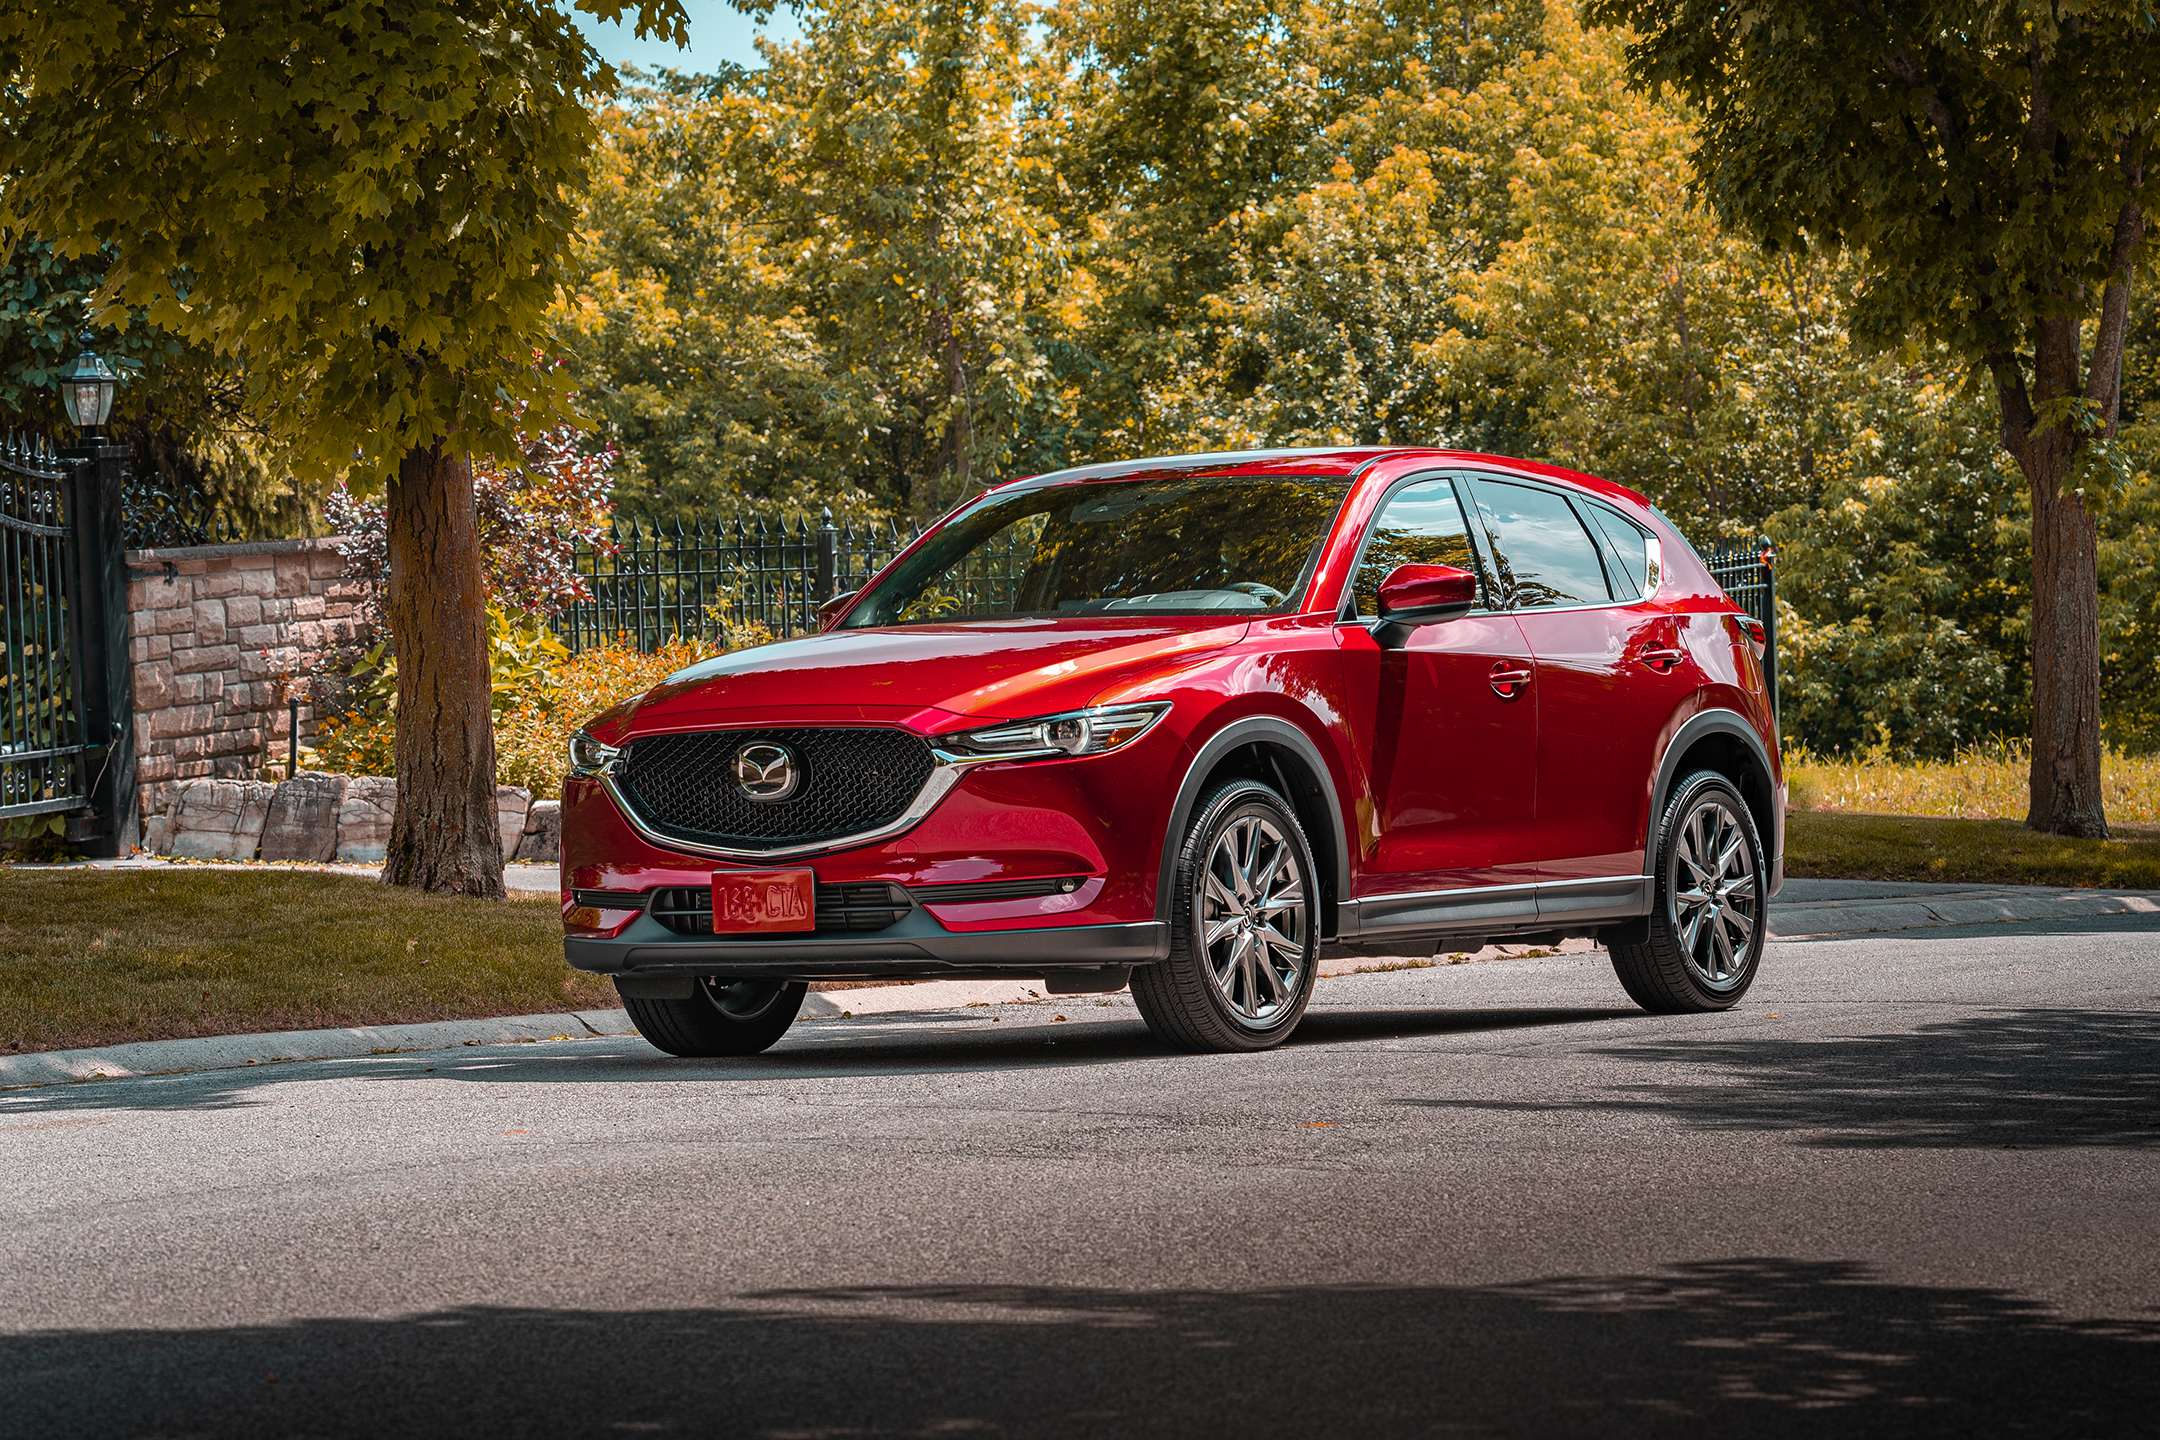 Mazda CX-5: Which Should You Buy, 2019 or 2020?